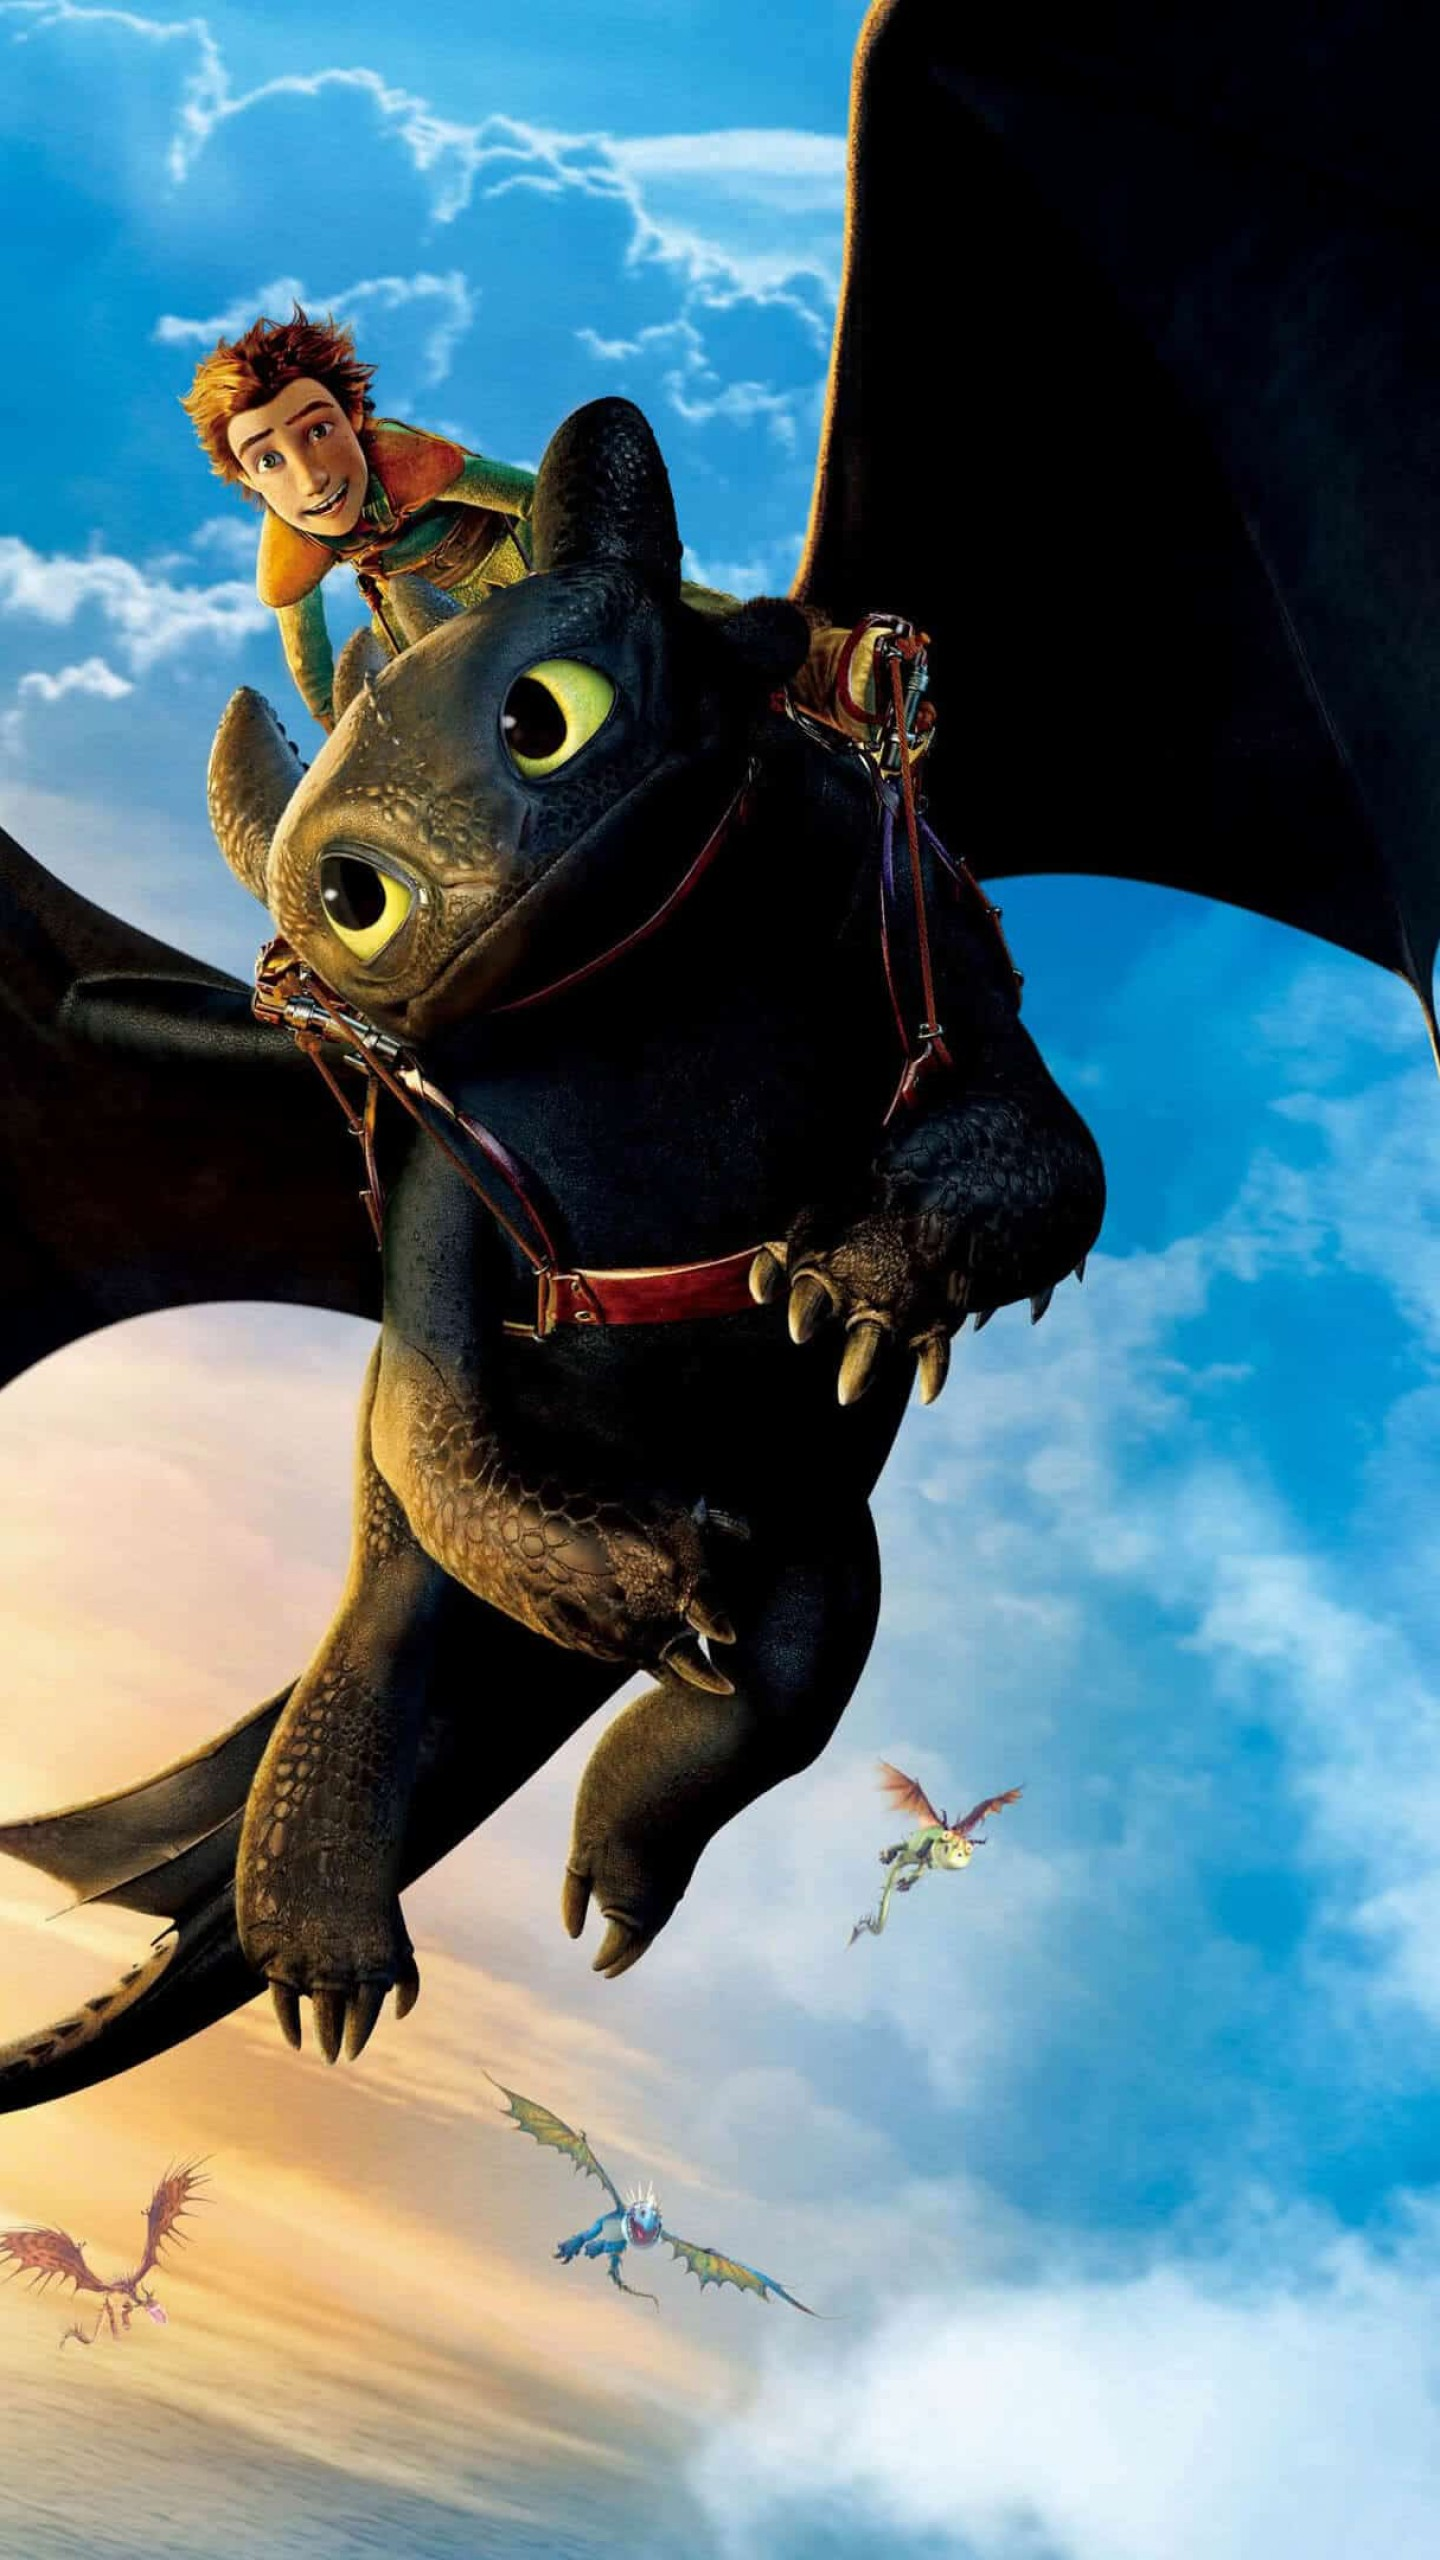 Wallpaper How To Train Your Dragon The Hidden World Poster 4k Movies 20227